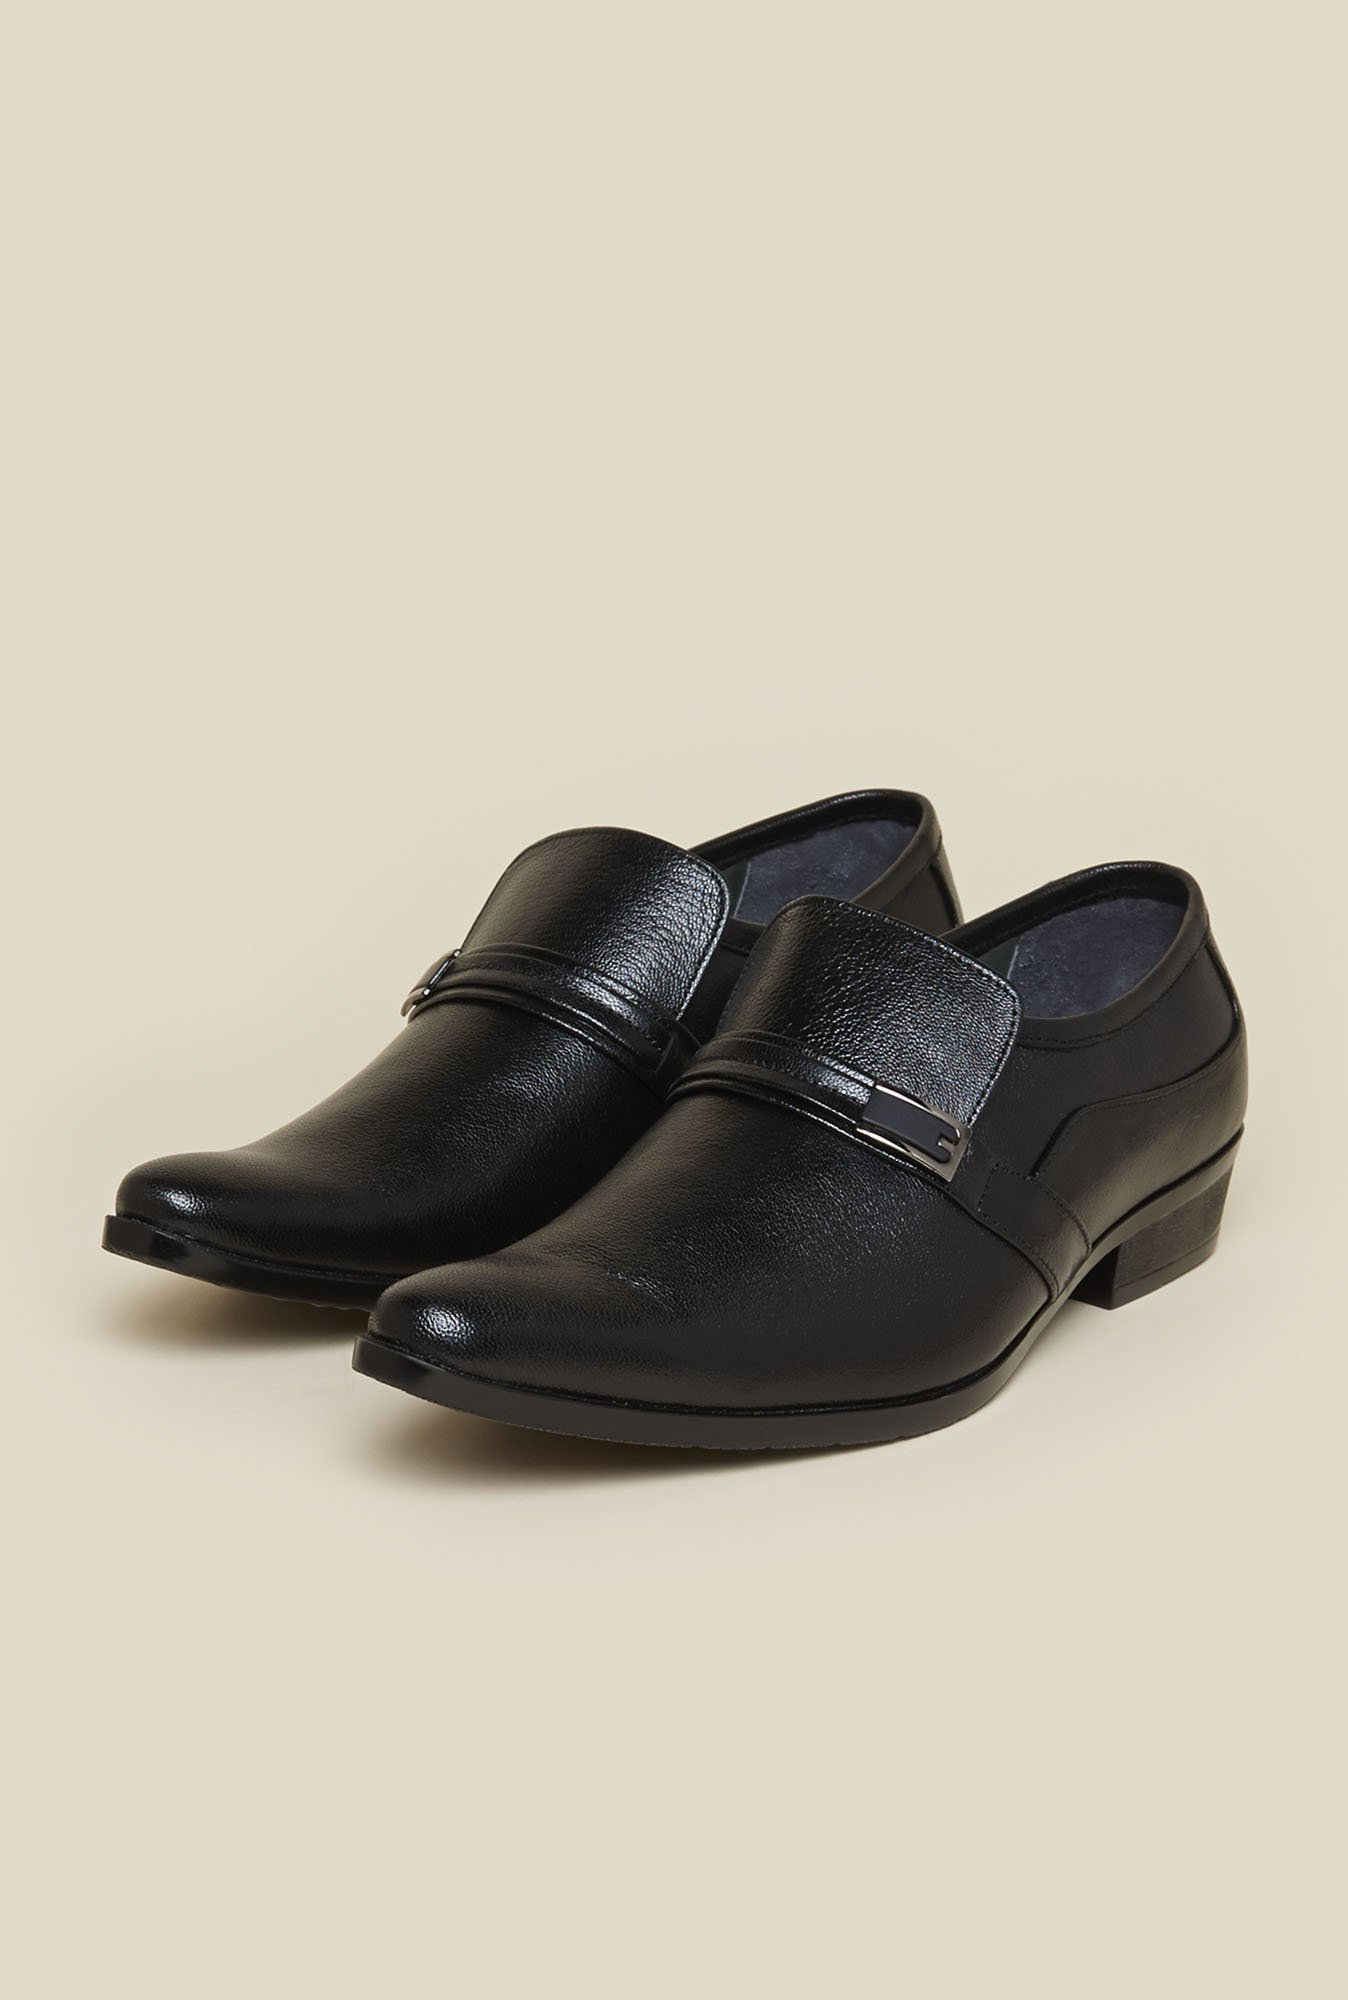 Mochi Black Leather Slip-Ons